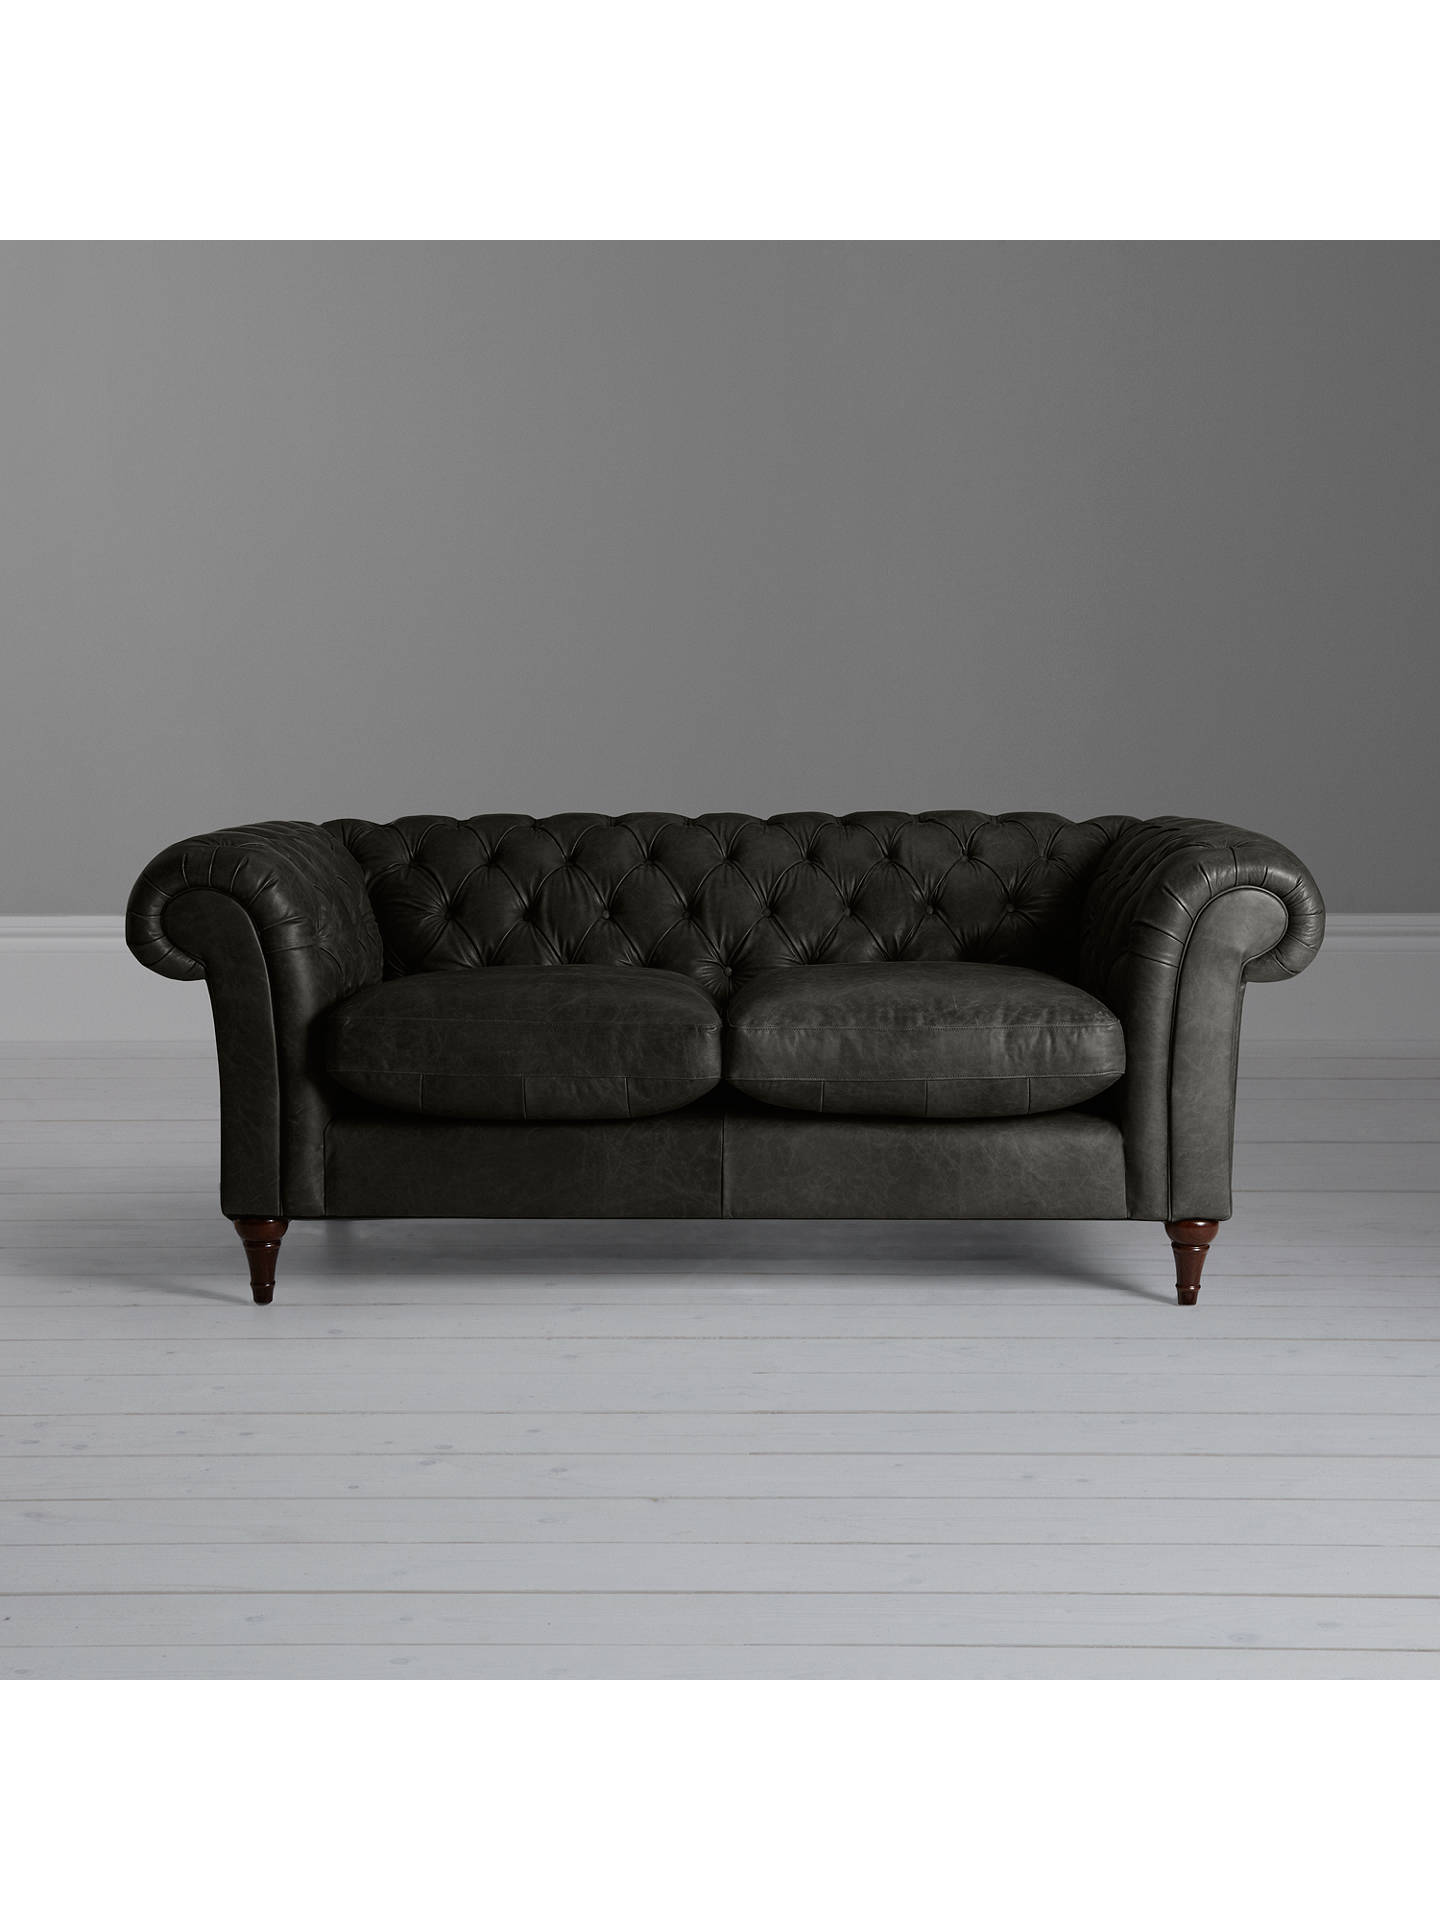 Buy John Lewis & Partners Cromwell Chesterfield Leather Large 3 Seater Sofa, Dark Leg, Winchester Anthracite Online at johnlewis.com